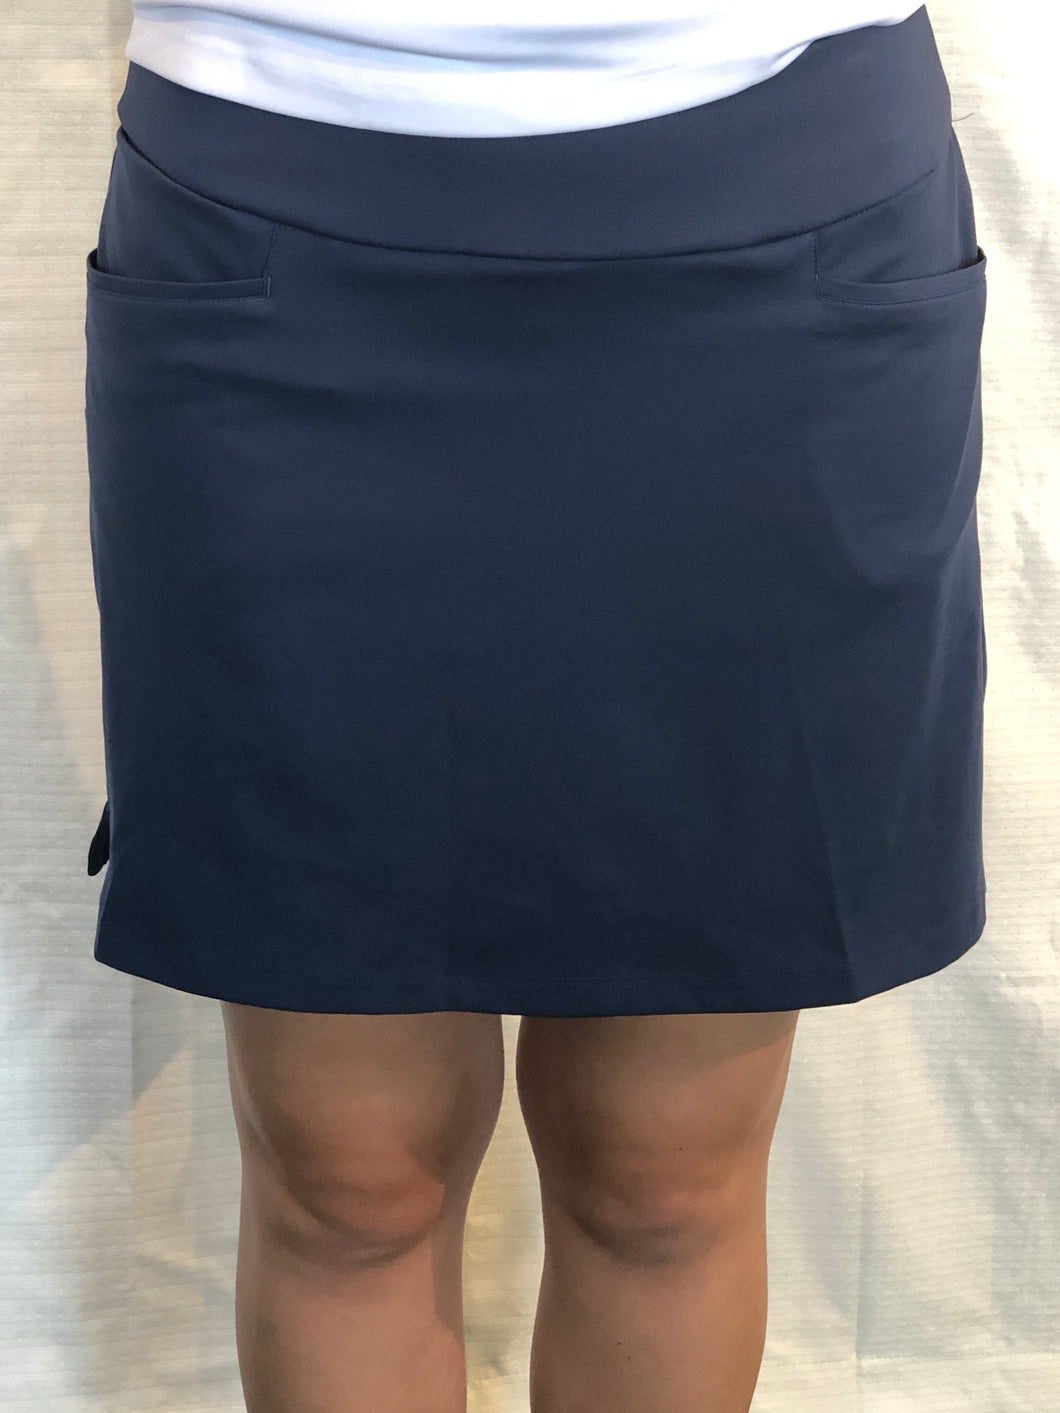 Adidas Ultimate Sport Skort - 3 colors